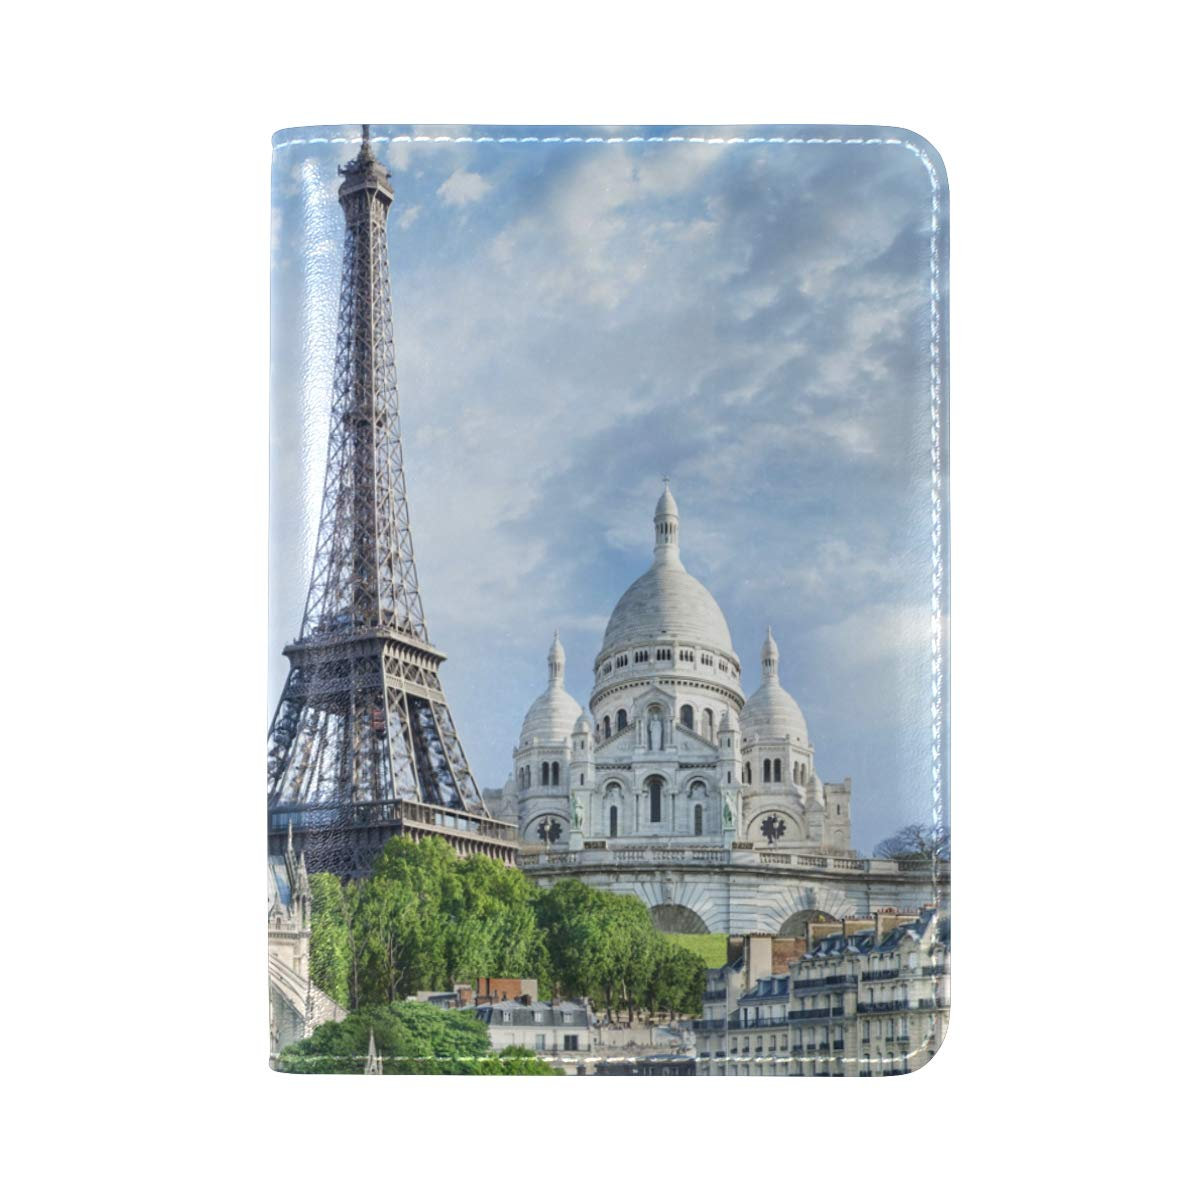 Paris Cities Eiffel Tower France Houses One Pocket Leather Passport Holder Cover Case Protector for Men Women Travel